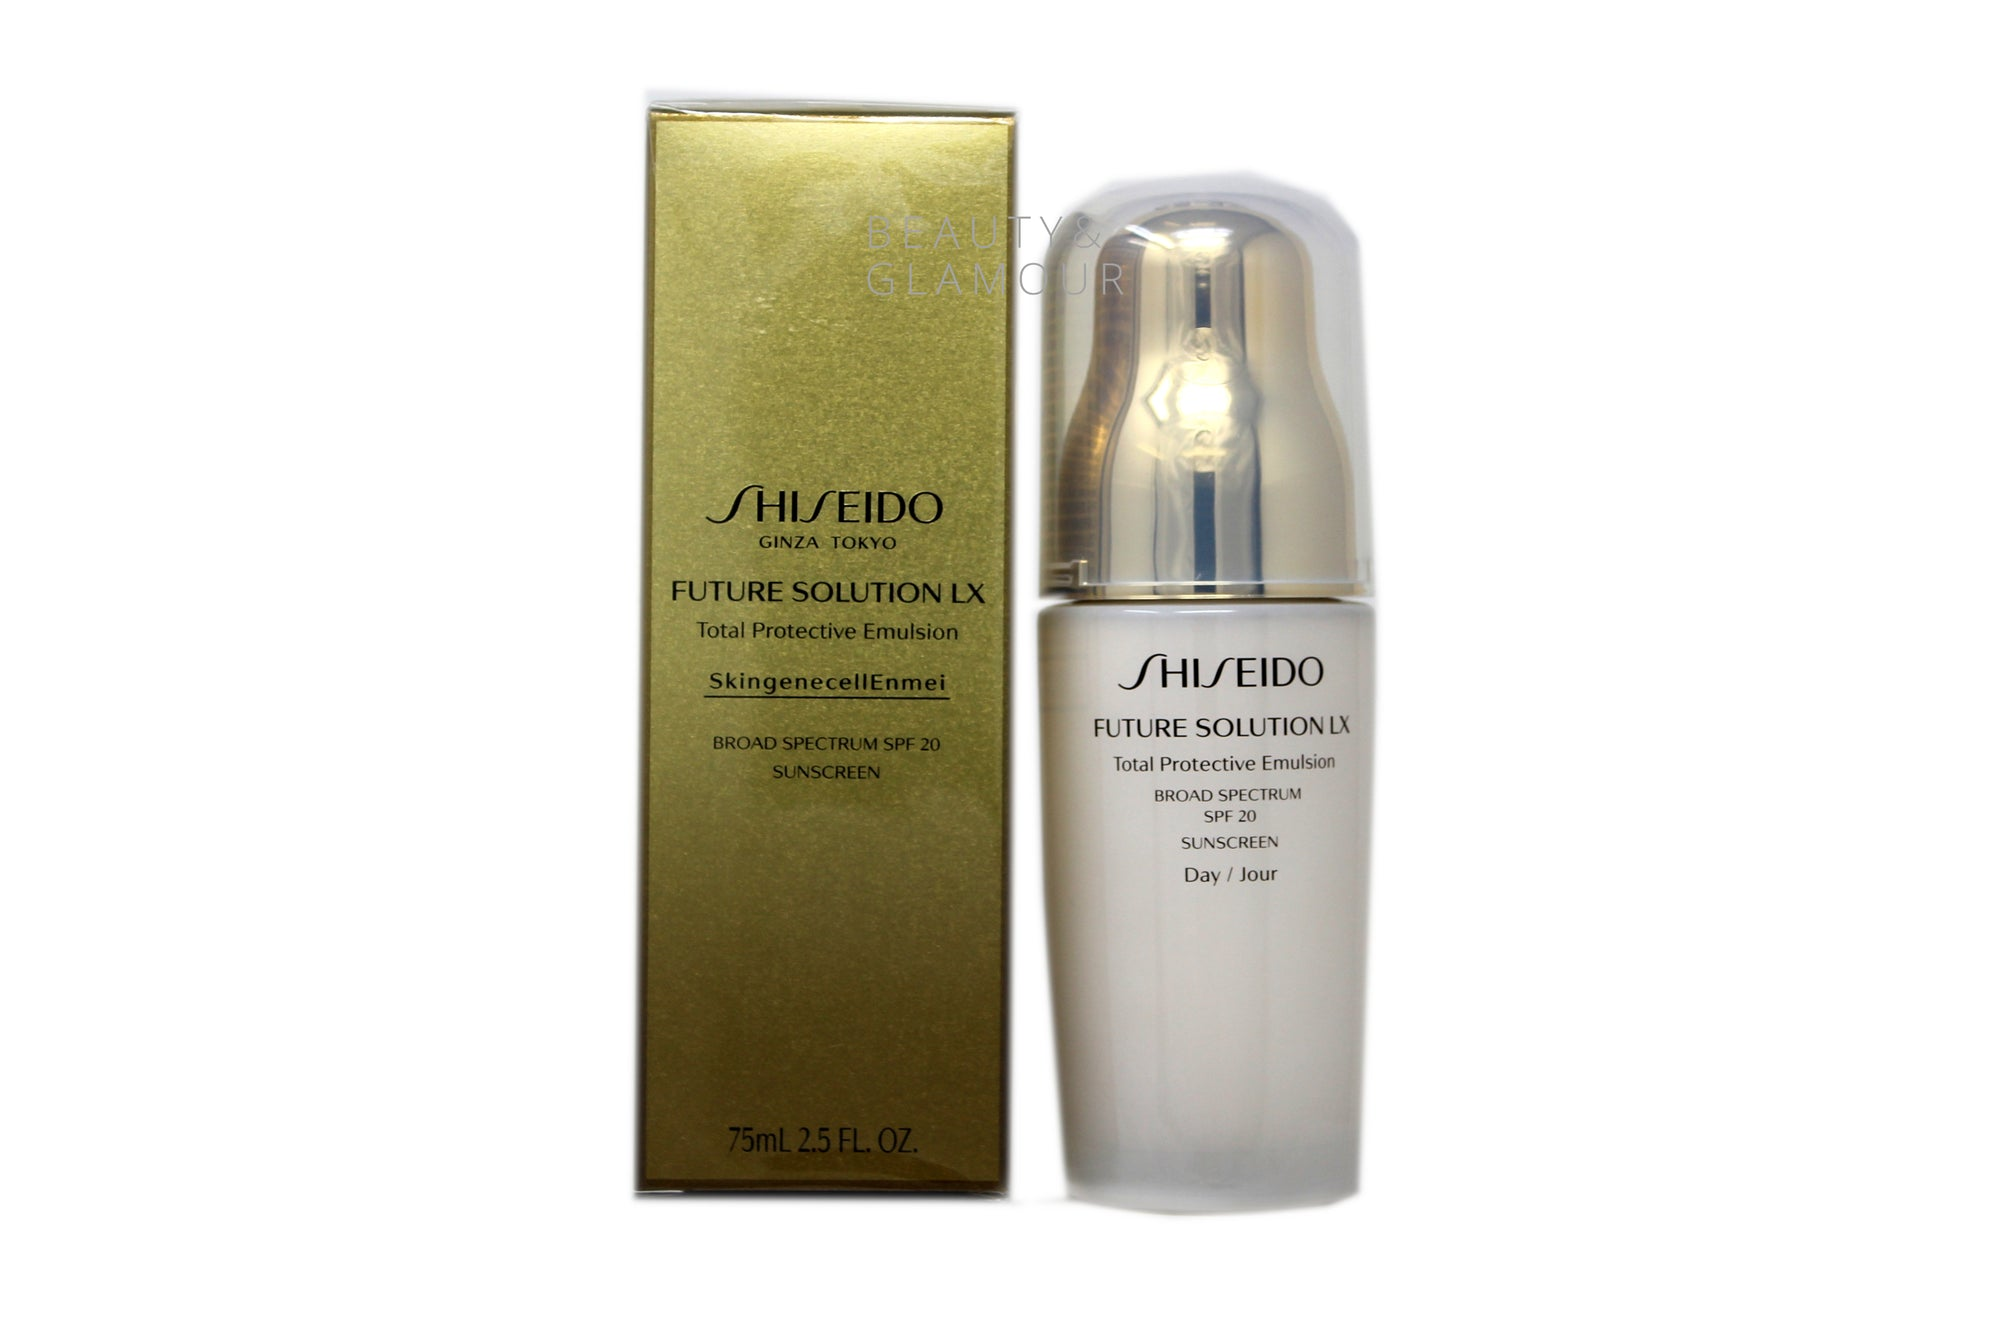 SHISEIDO FUTURE SOLUTION LX TOTAL PROTECTIVE EMULSION SPF 20   SKINGENECELL ENMEI  SUNSCREEN  AVAILABLE SIZE: 75 ML/2.5 FL.OZ.  BENEFITS:  EXCLUSIVE SKINGENECELLENMEI HELPS VISIBLY RESTORE AND PROLONG SKIN'S BEAUTY AND REDUCE THE APPEARANCE OF SIGNS OF AGING.